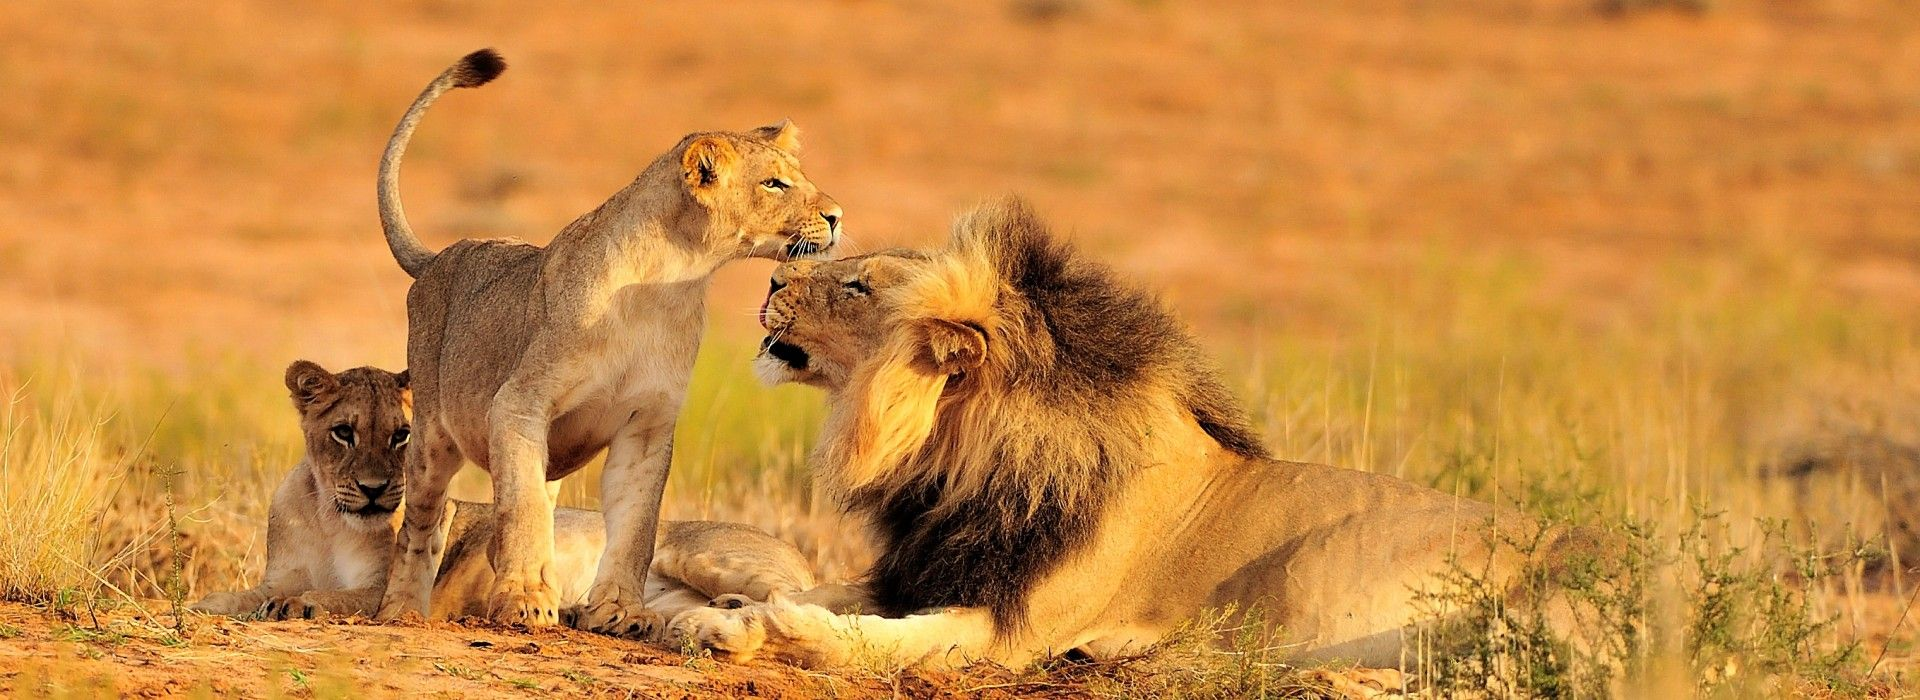 Wildlife safaris and game drives Tours in Garden Route National Park